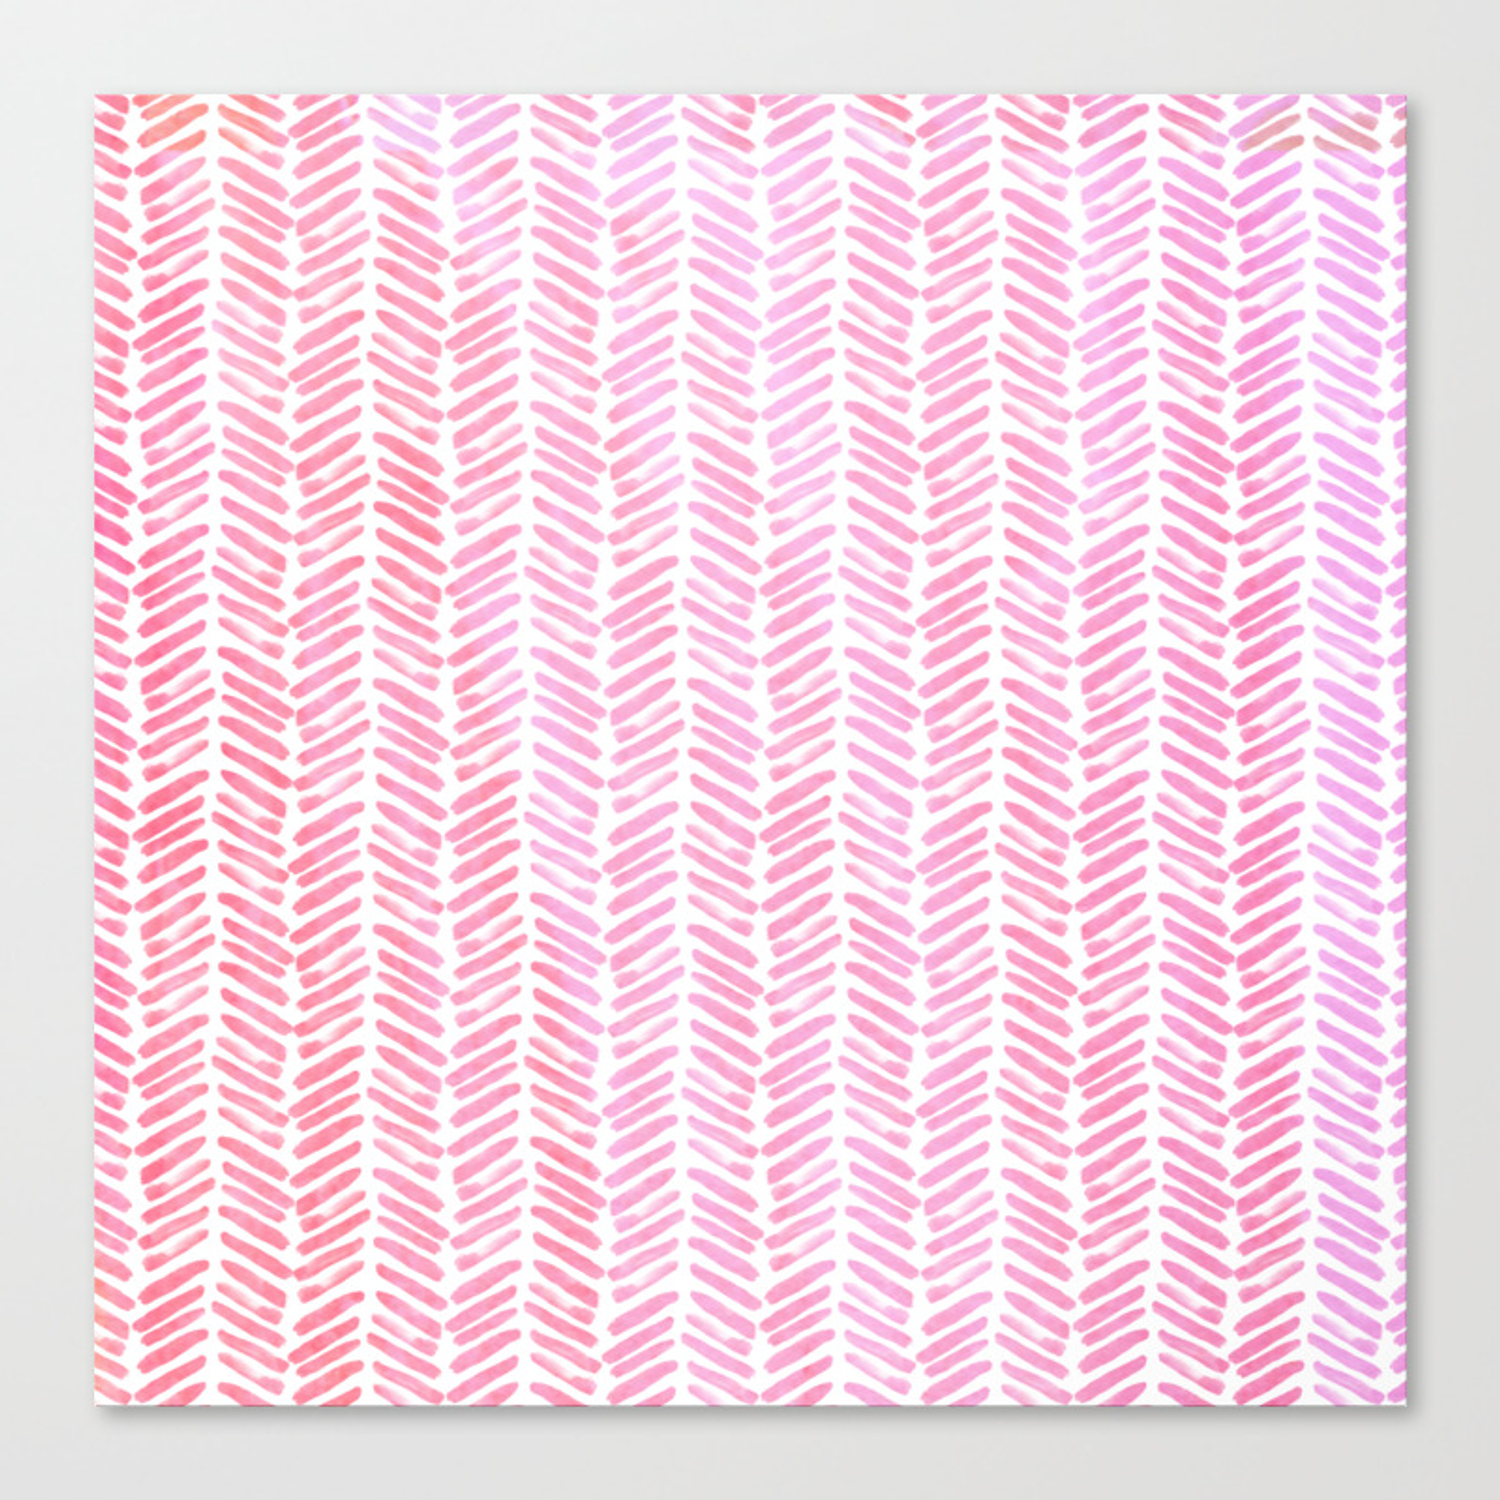 Handpainted Chevron Pattern Small Pink Watercolor On White Canvas Print By Simplicity Of Live Society6